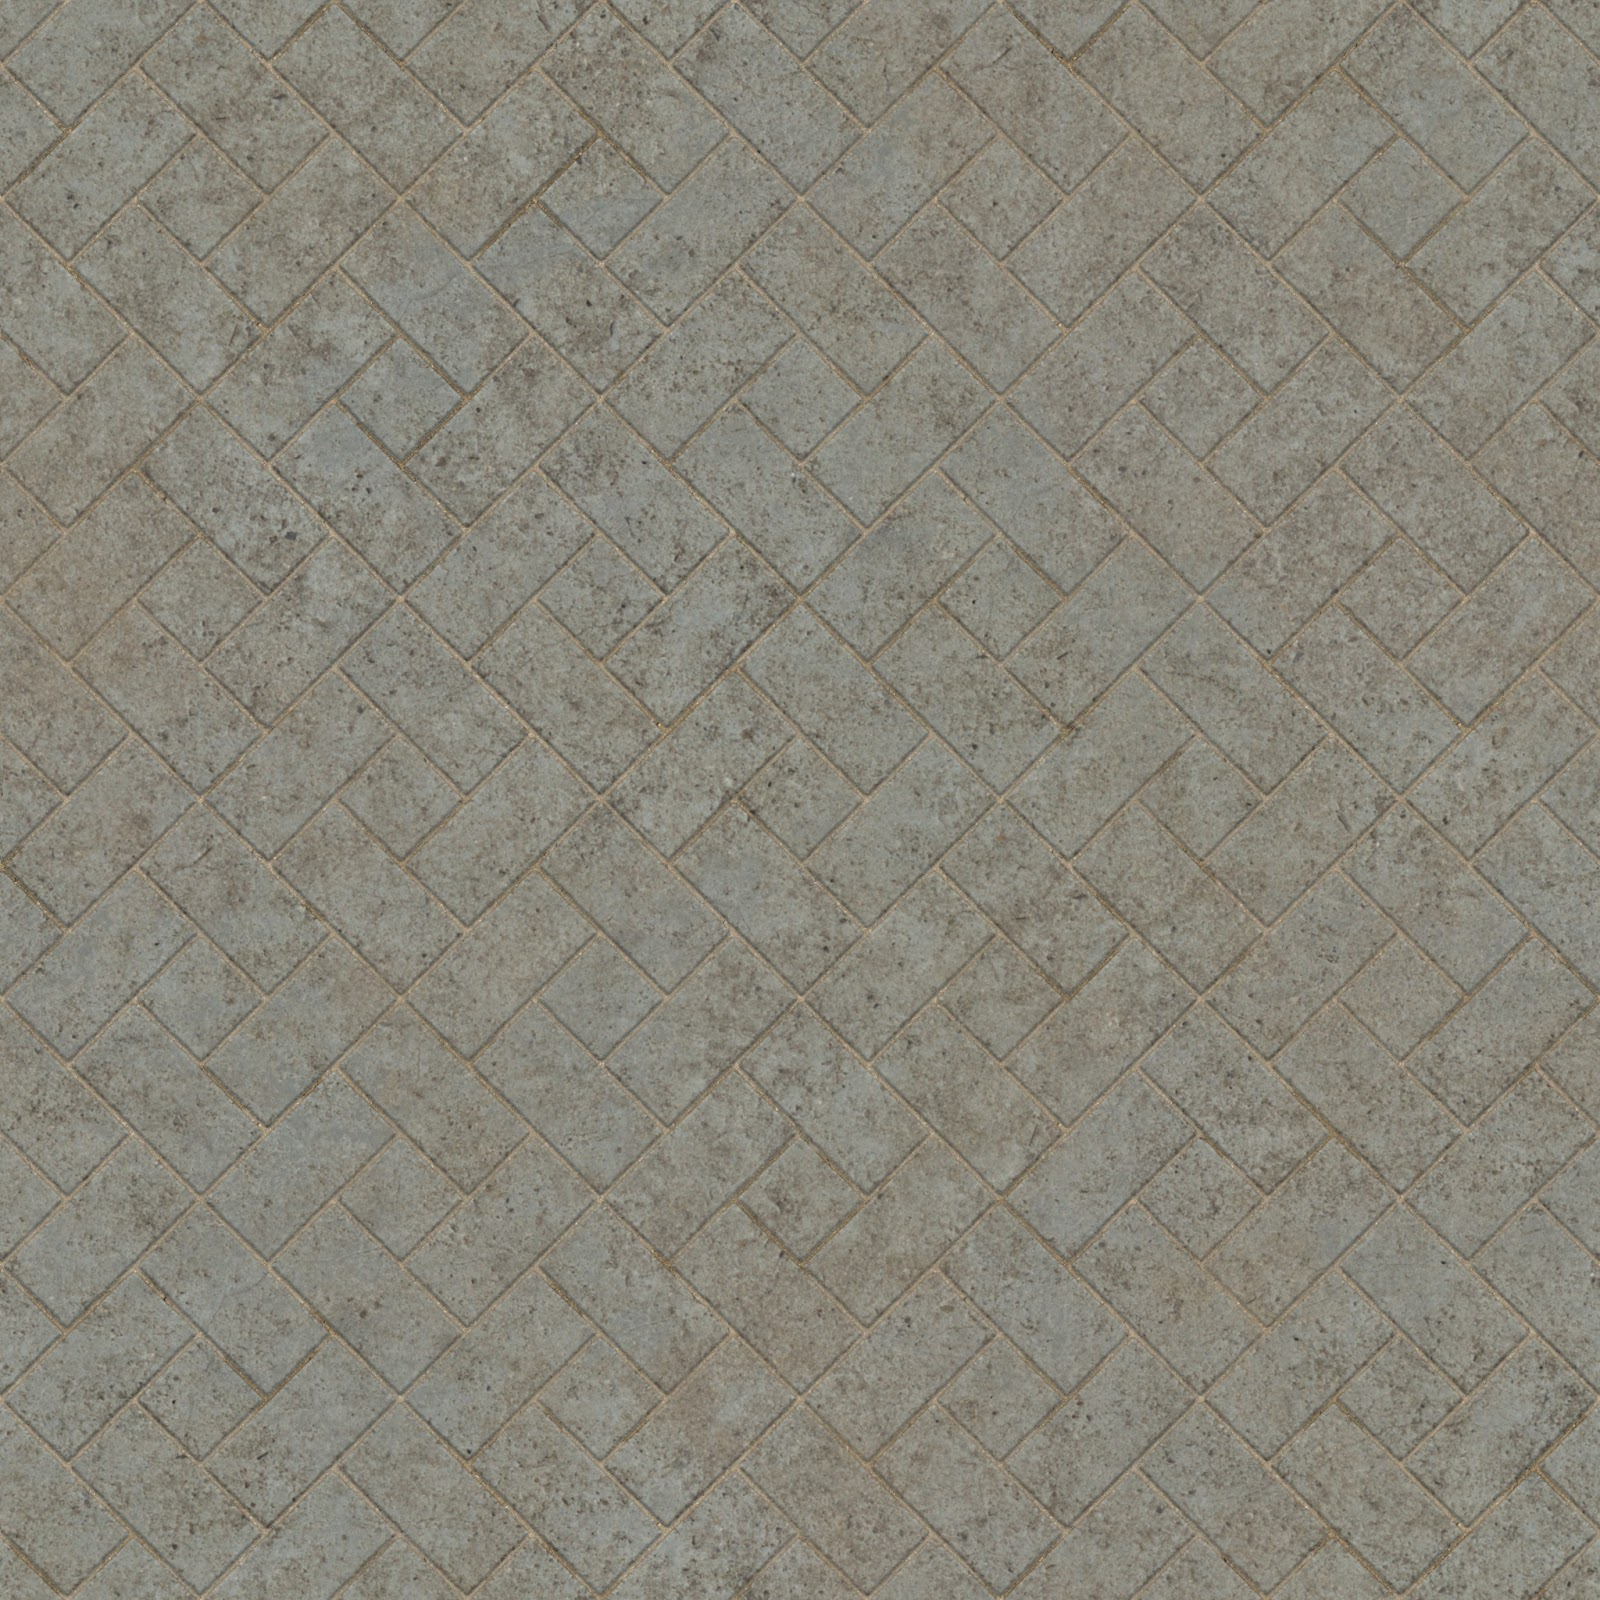 Brick pavement diamond tiles seamless texture 2048x2048